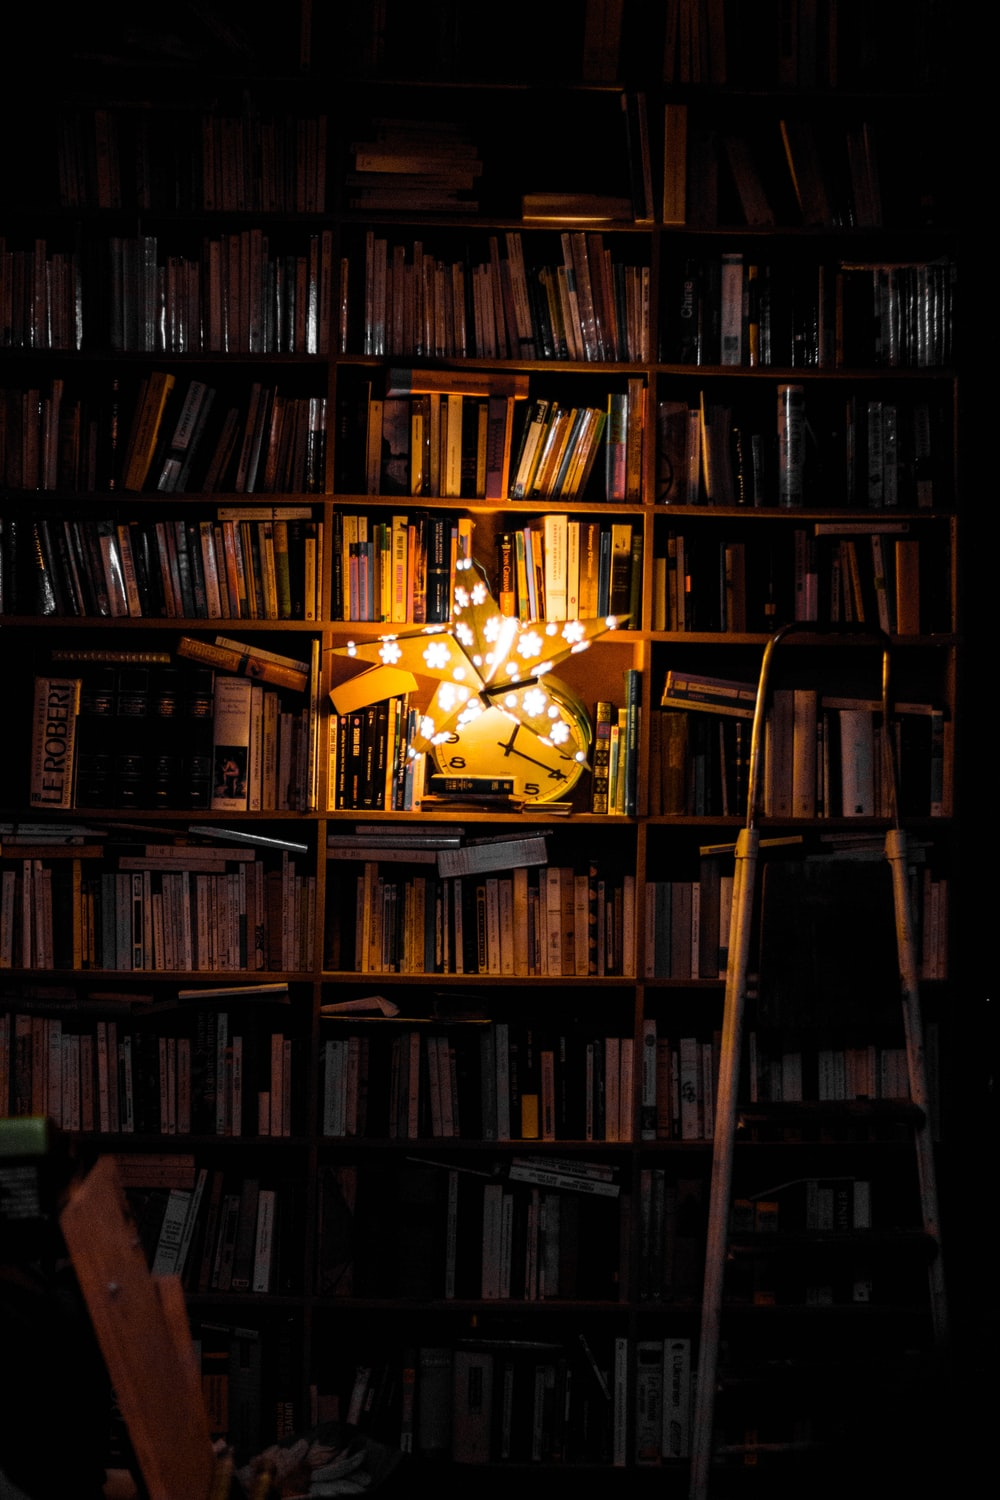 photography of bookshelf and star LED light decor